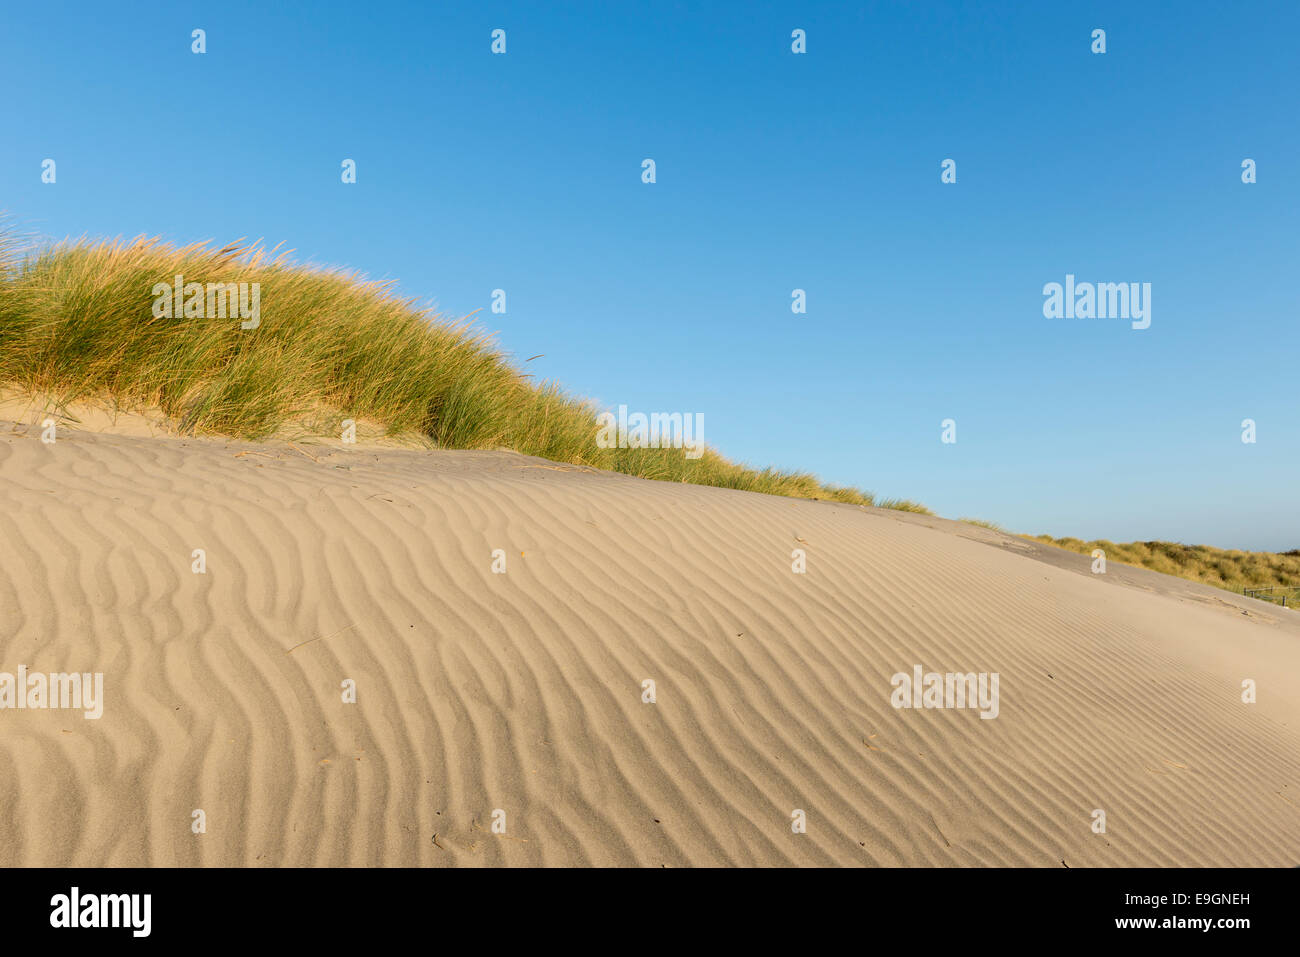 sand dune showing rippled patterns in the sand along with sand couch and marram grass against a clear blue sky, - Stock Image